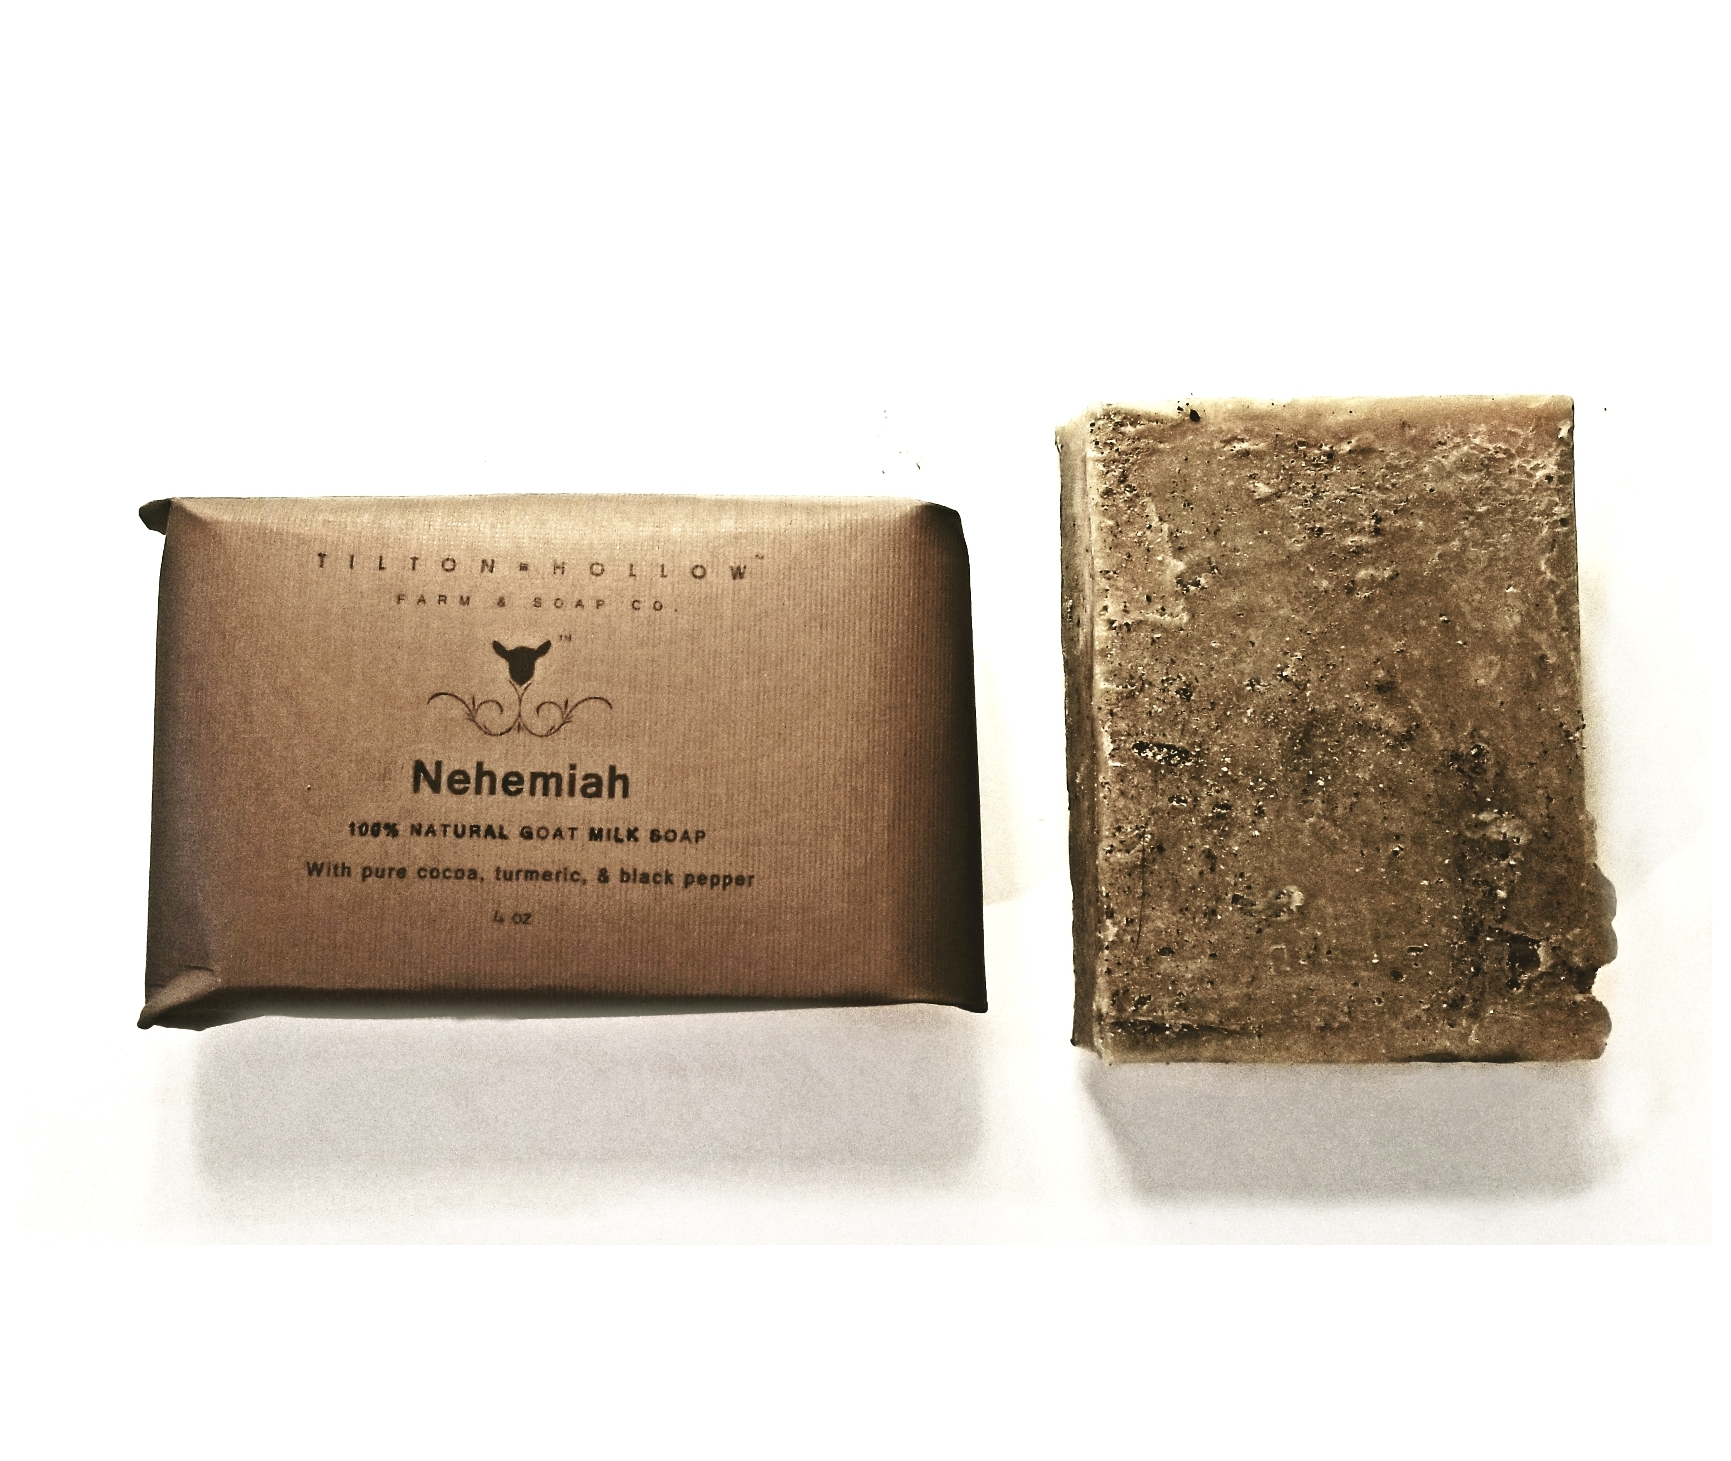 {Nehemiah} - Cocoa, Turmeric, Black Pepper, & Essential oils{Nehemiah} natural Goat Milk Soap, is named after and inspired by Nehemiah Tilton. Nehemiah came to Licking county with his parents John and Sally, from New Jersey in 1823. Nehemiah, was a hardworking, rugged farmer...yet a gentle soul, and that's the qualities we put into this soap! {Nehemiah} Goat Milk Soap is works hard to get your skin clean, while being gentle enough to leave your skin feeling soft and rejuvenated!